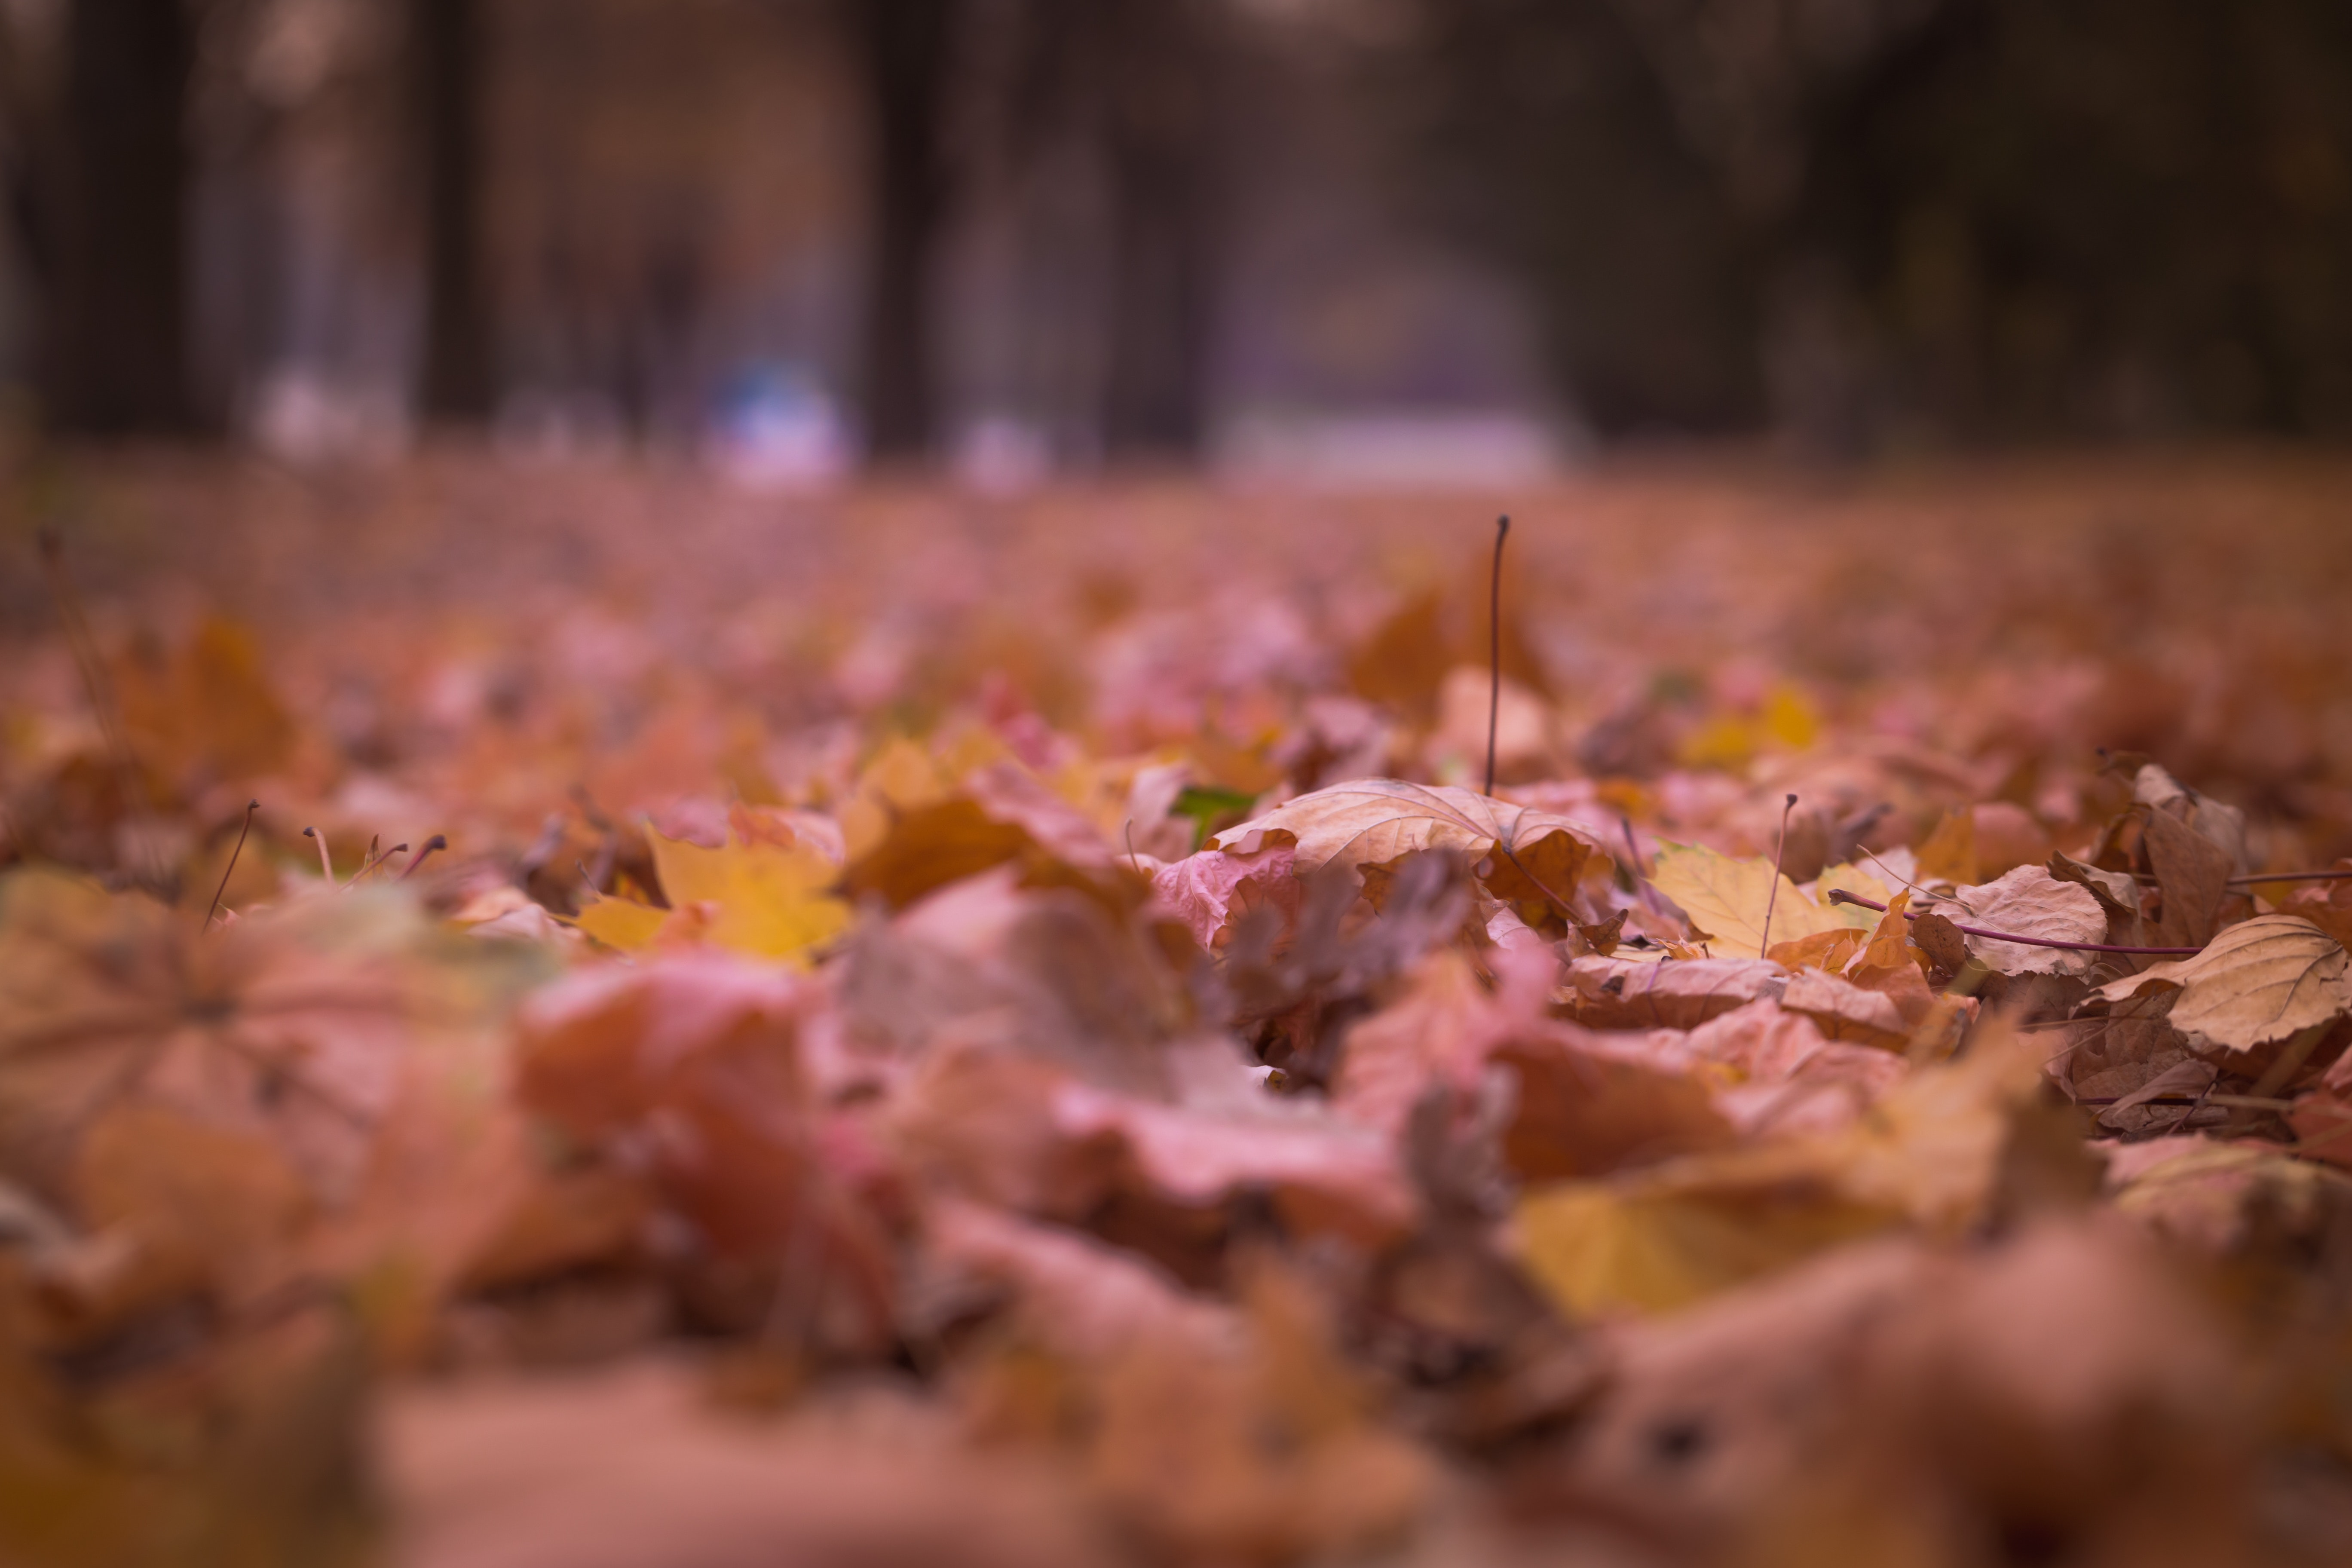 Withered Leaves on Floor Focus Photography, Macro, Maple, Outdoors, Season, HQ Photo